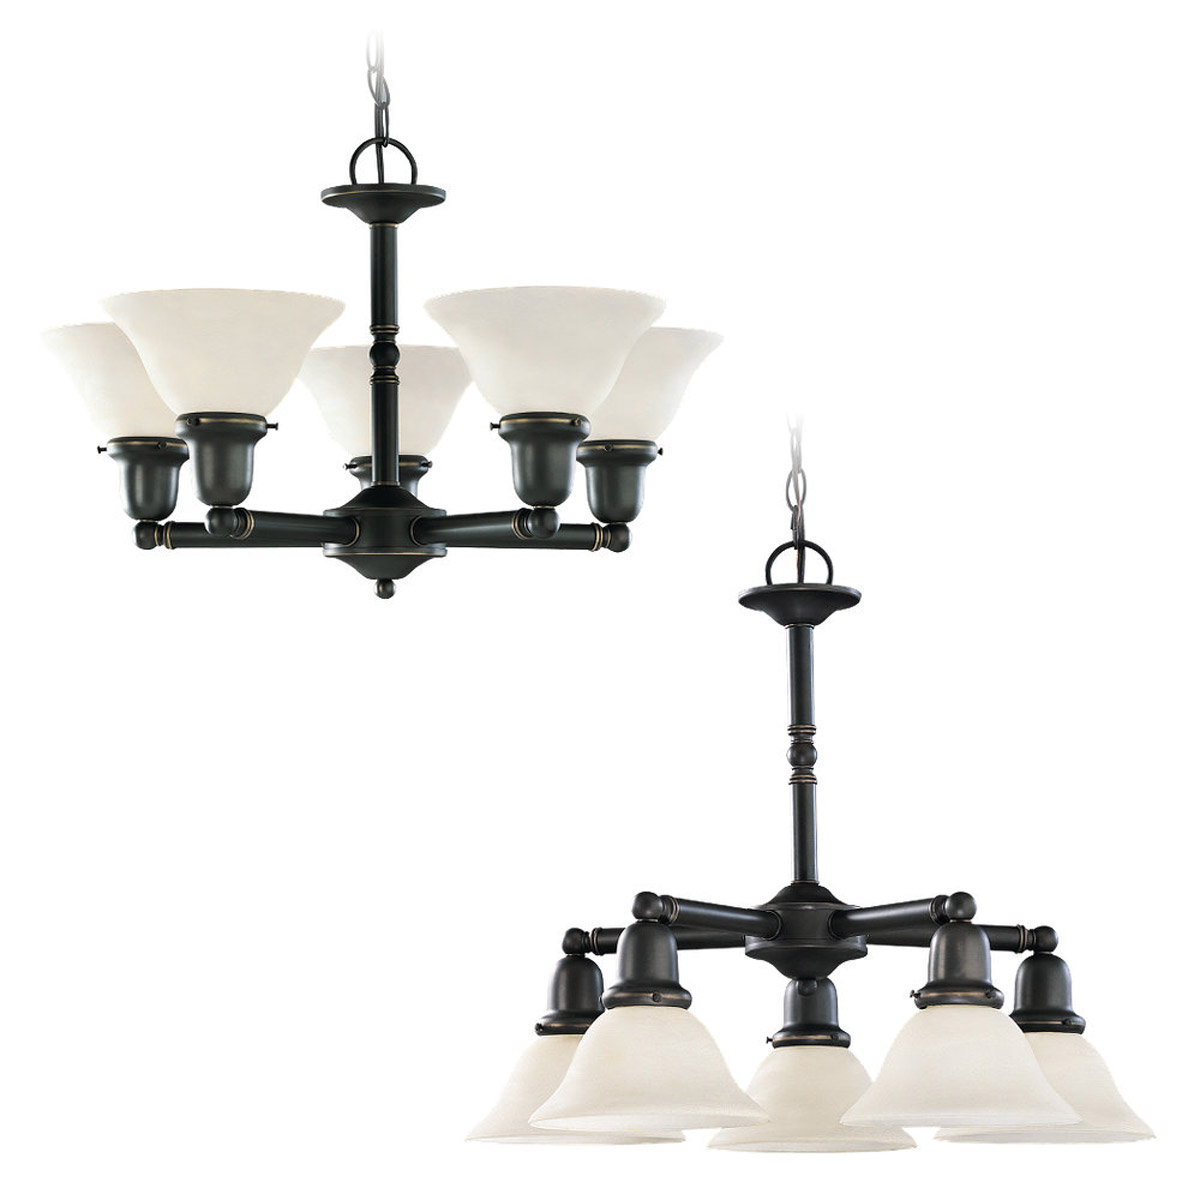 Sea Gull Lighting Sussex 5 Light Chandelier in Heirloom Bronze 39062BLE-782